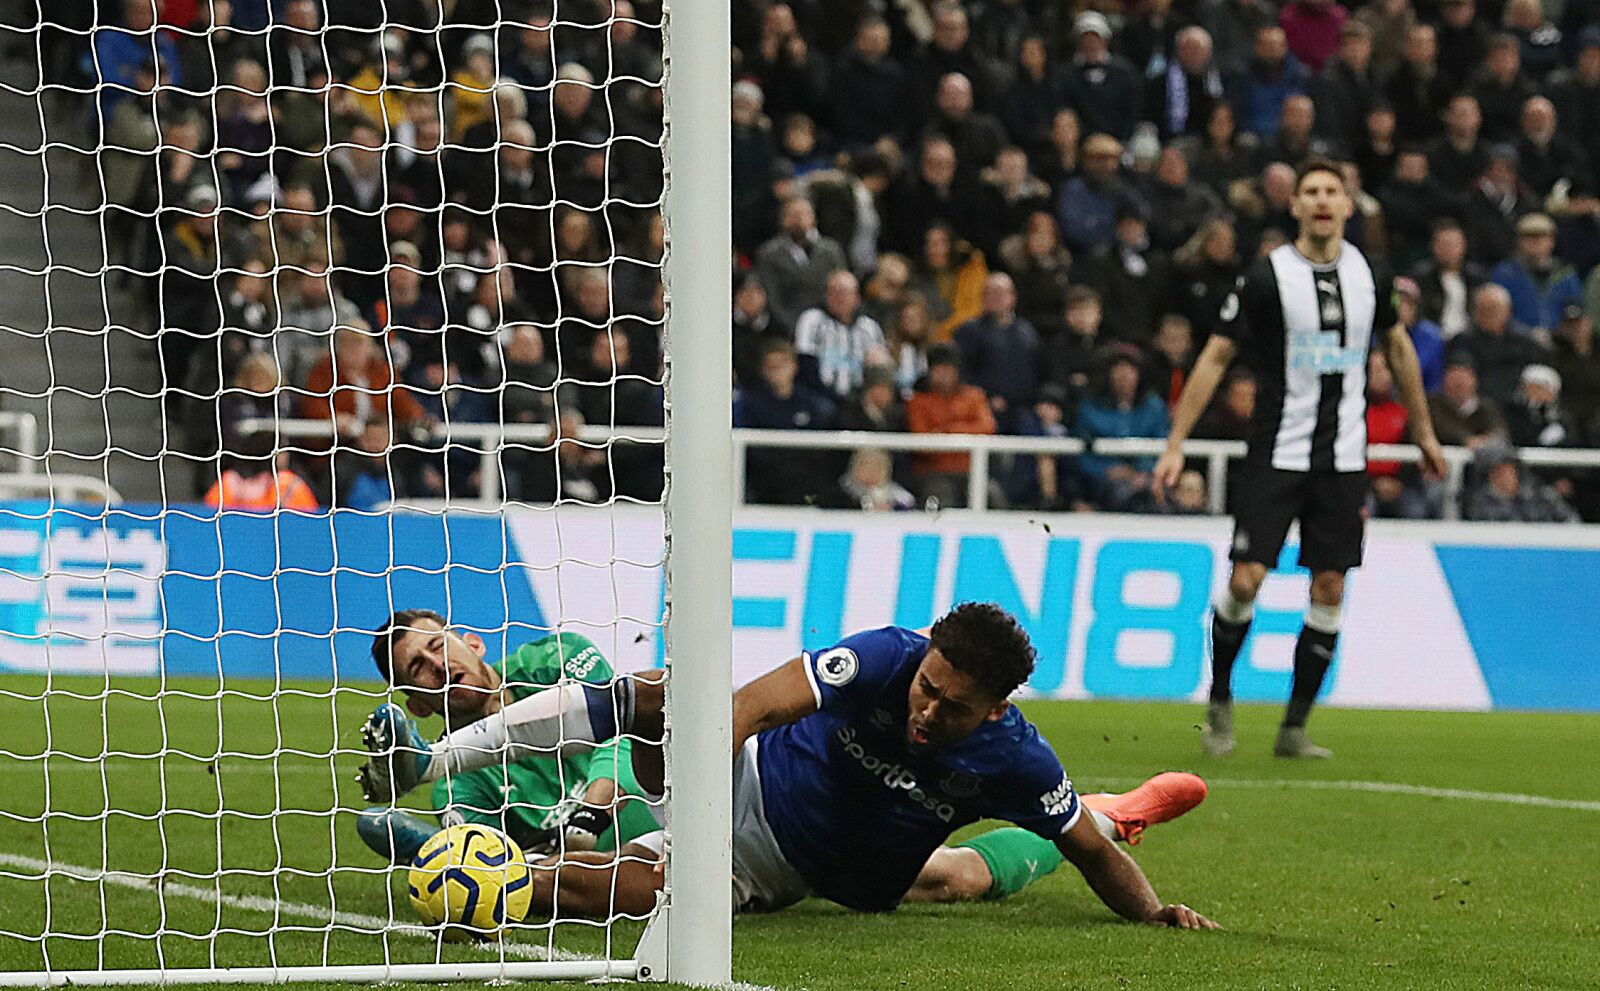 Everton to bounce back against Magpies